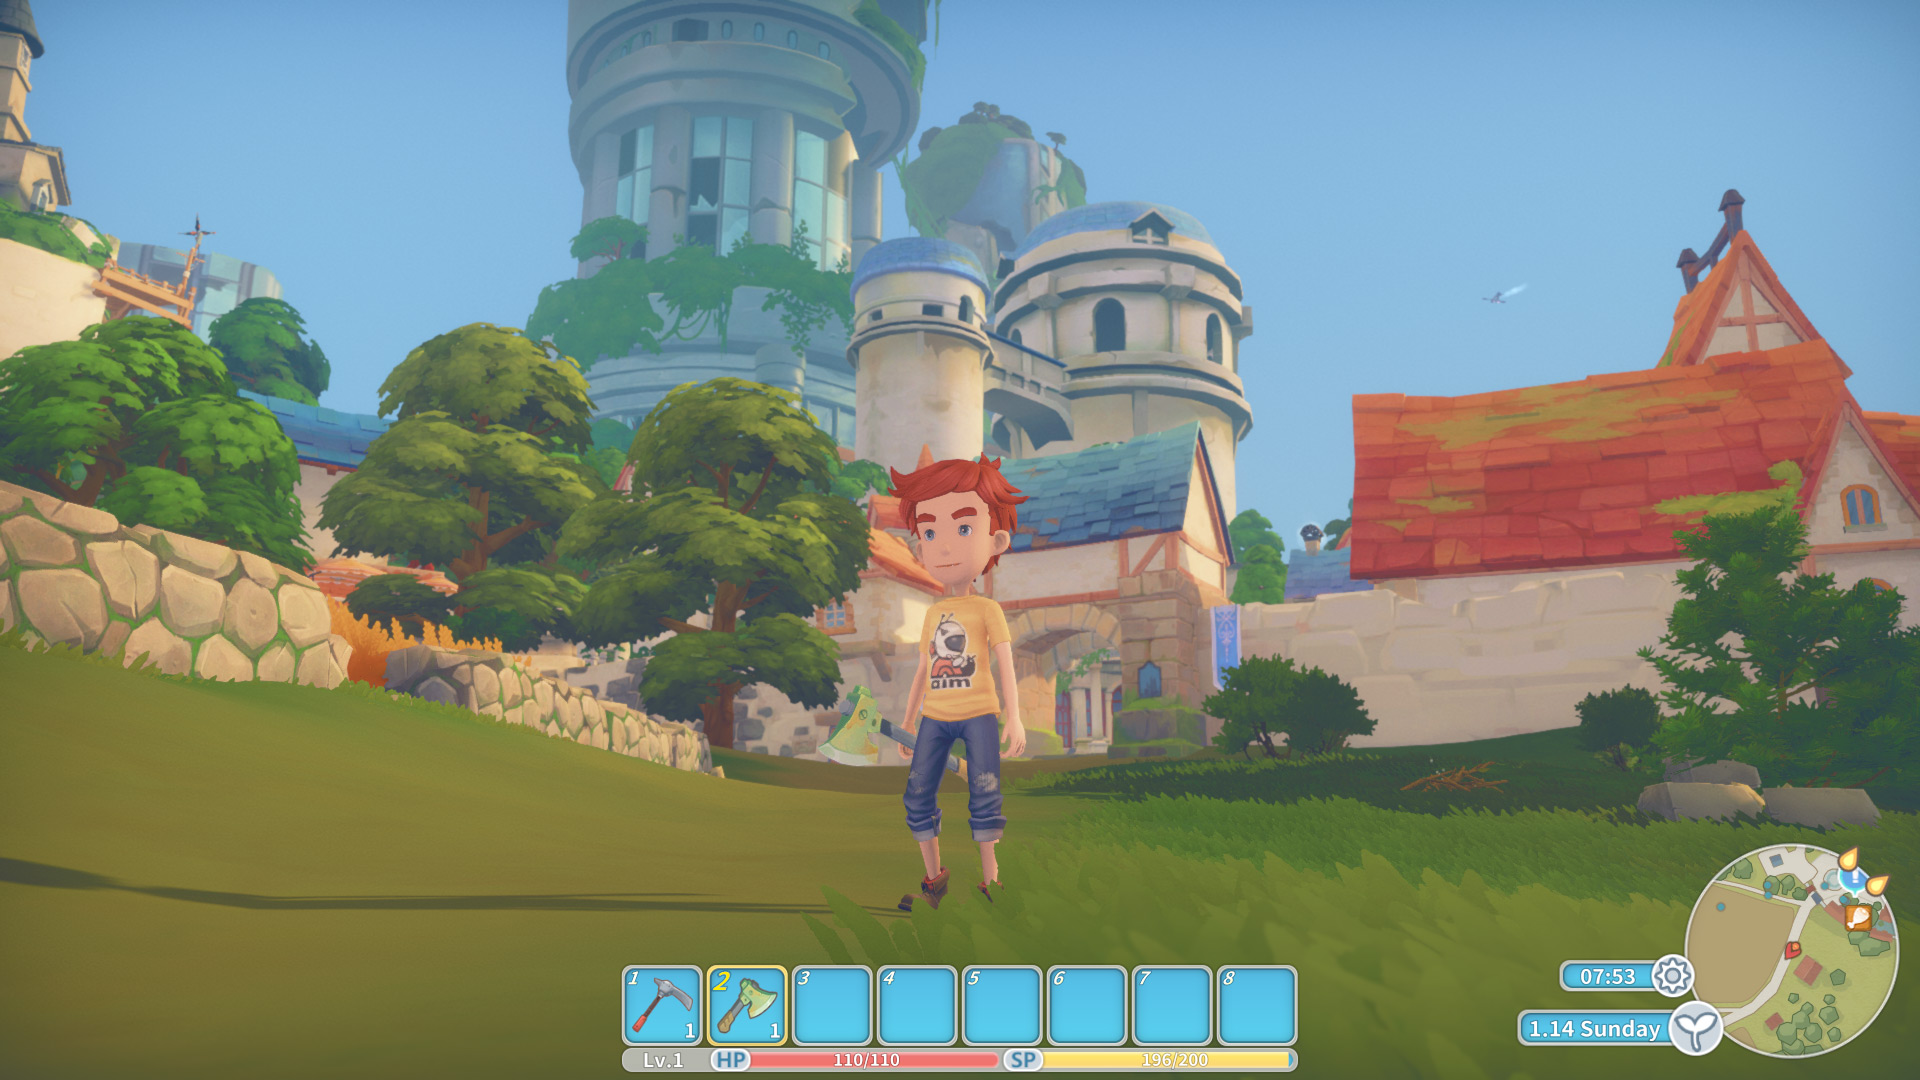 My Time at Portia, how to get a sprinkler